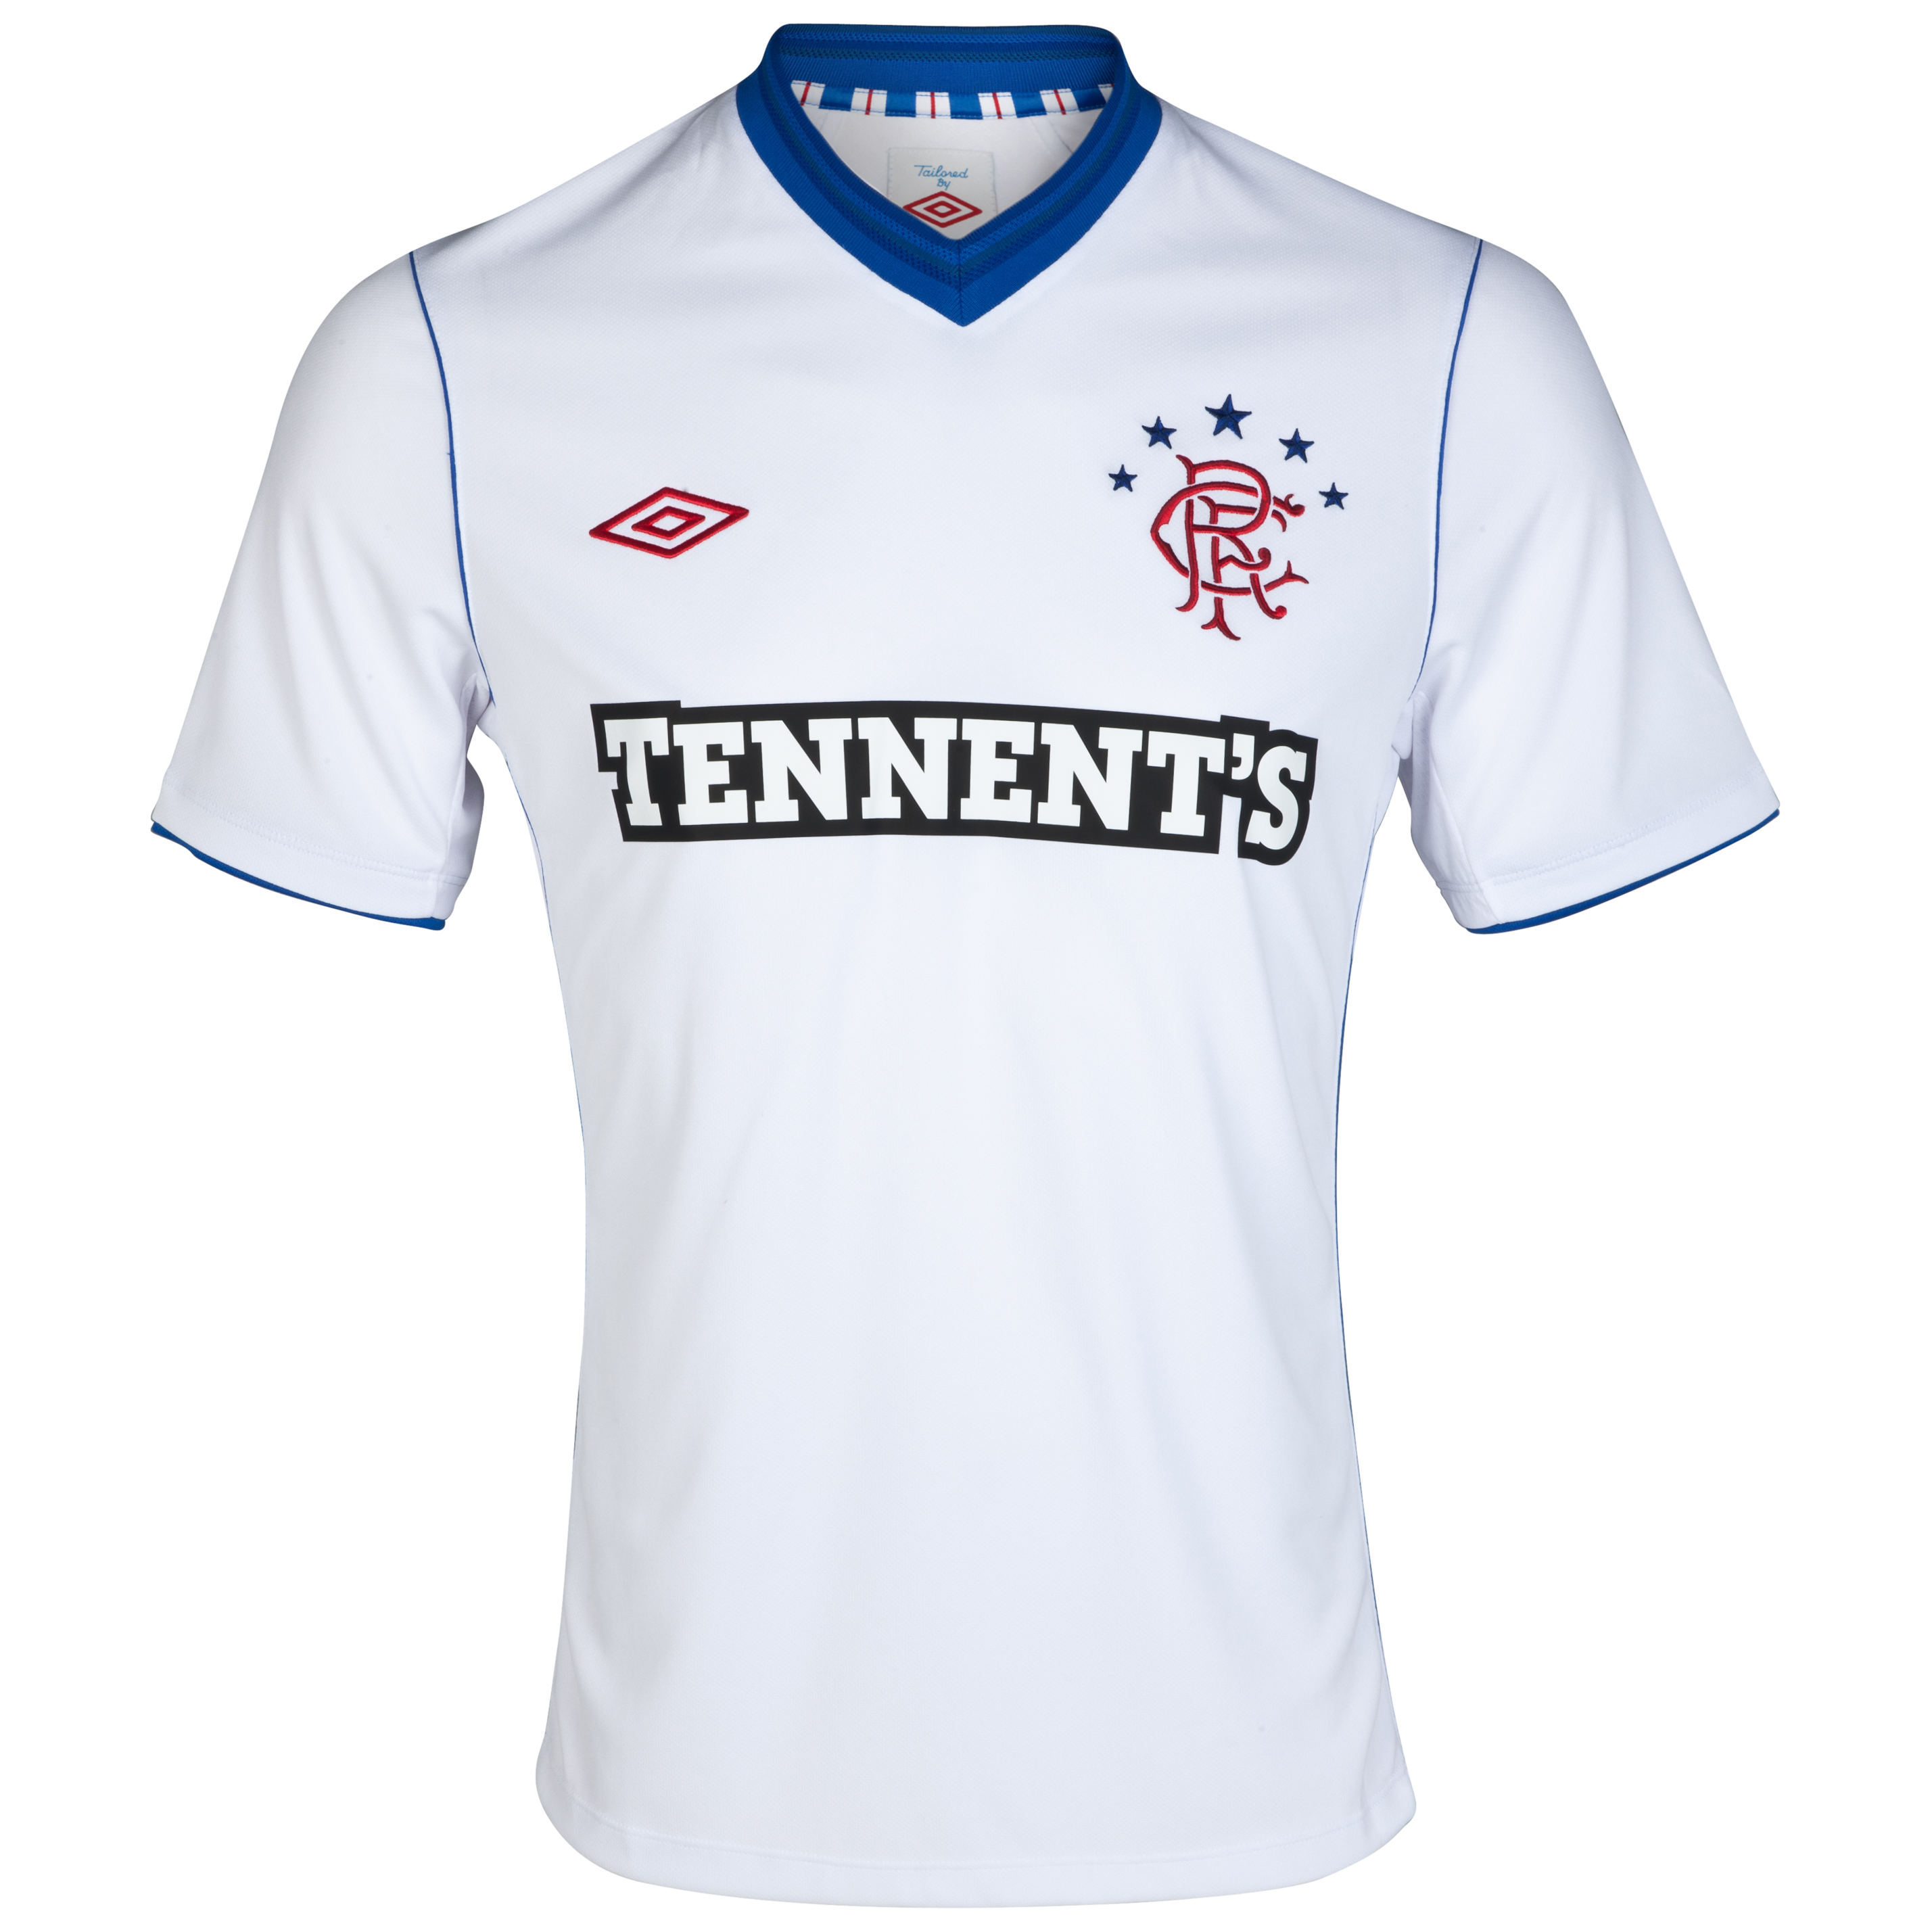 Glasgow Rangers Away Shirt 2012/13